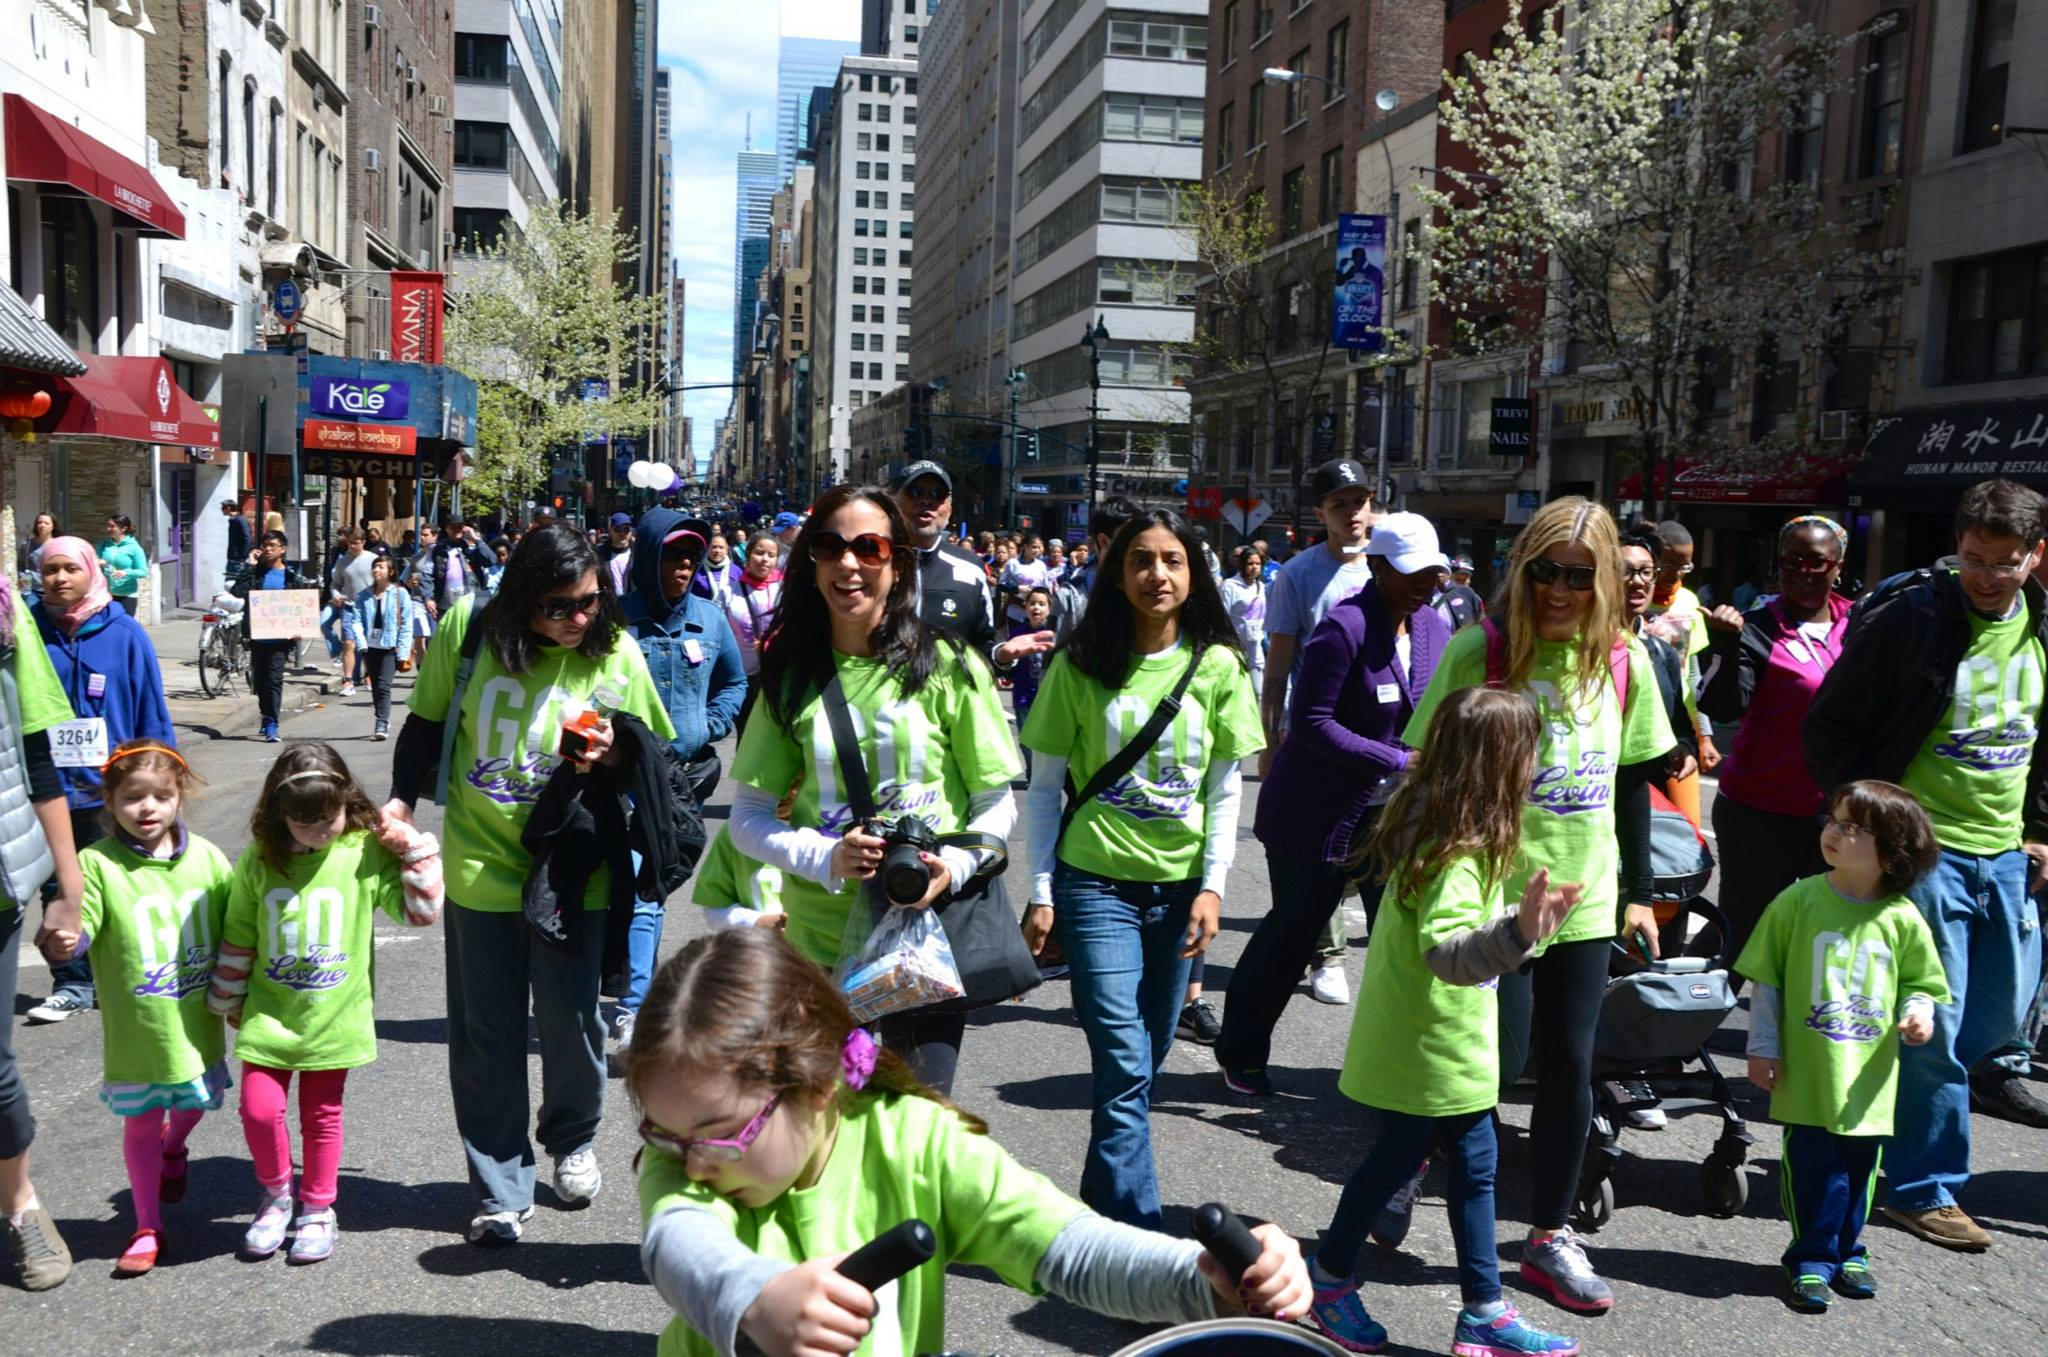 team-levine-walkers-at-the-2015-march-for-babies-walk_16297477553_o.jpg